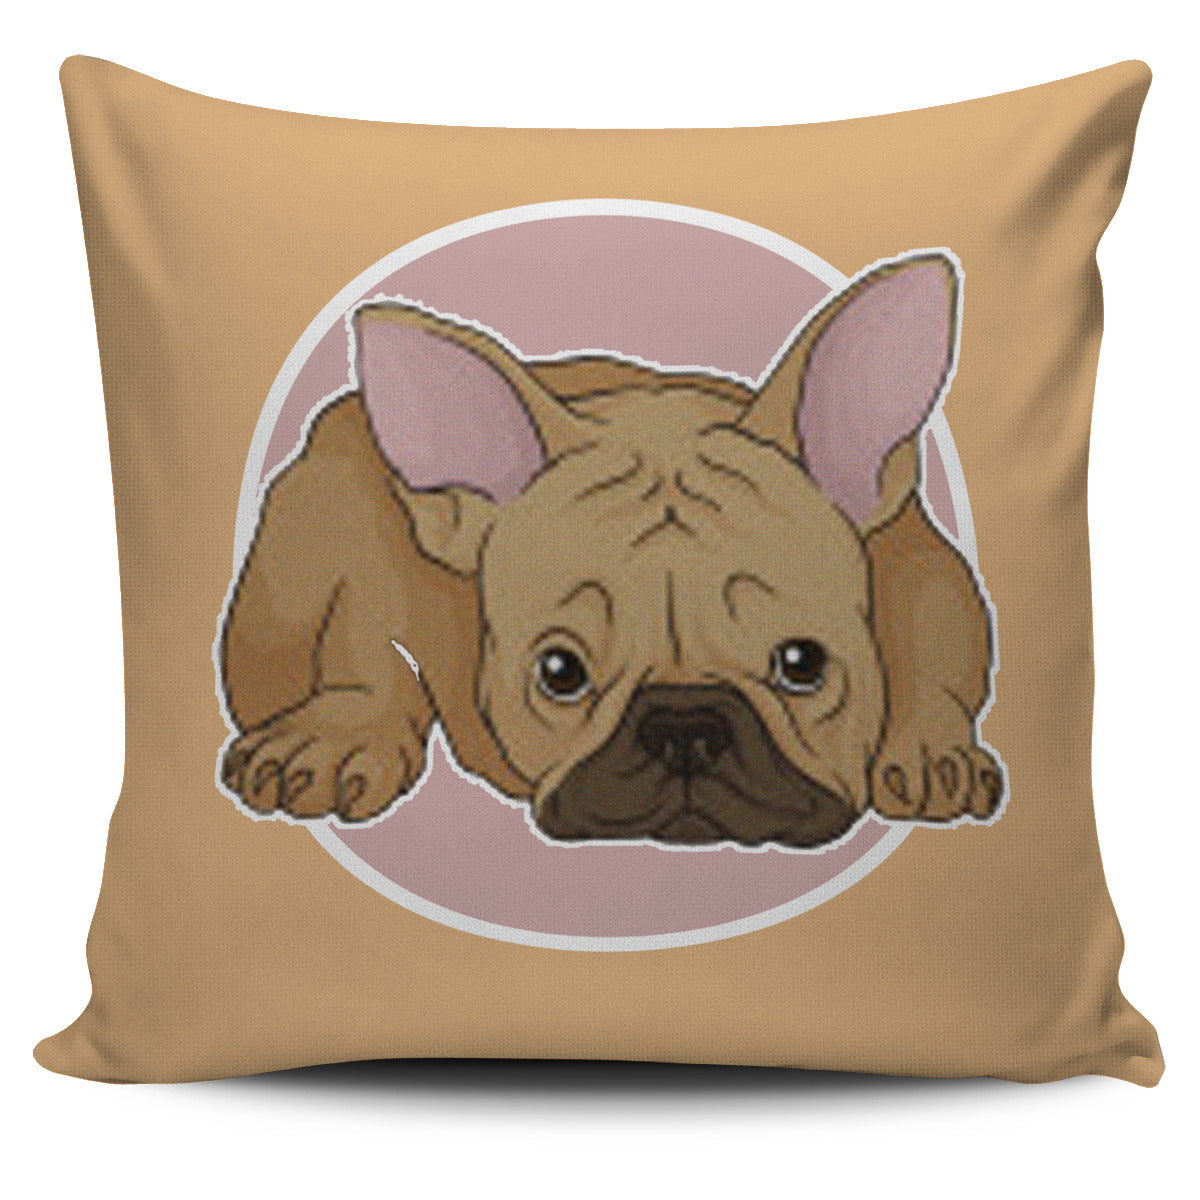 Ace French Bulldog Pillow - Frenchie Bulldog Shop